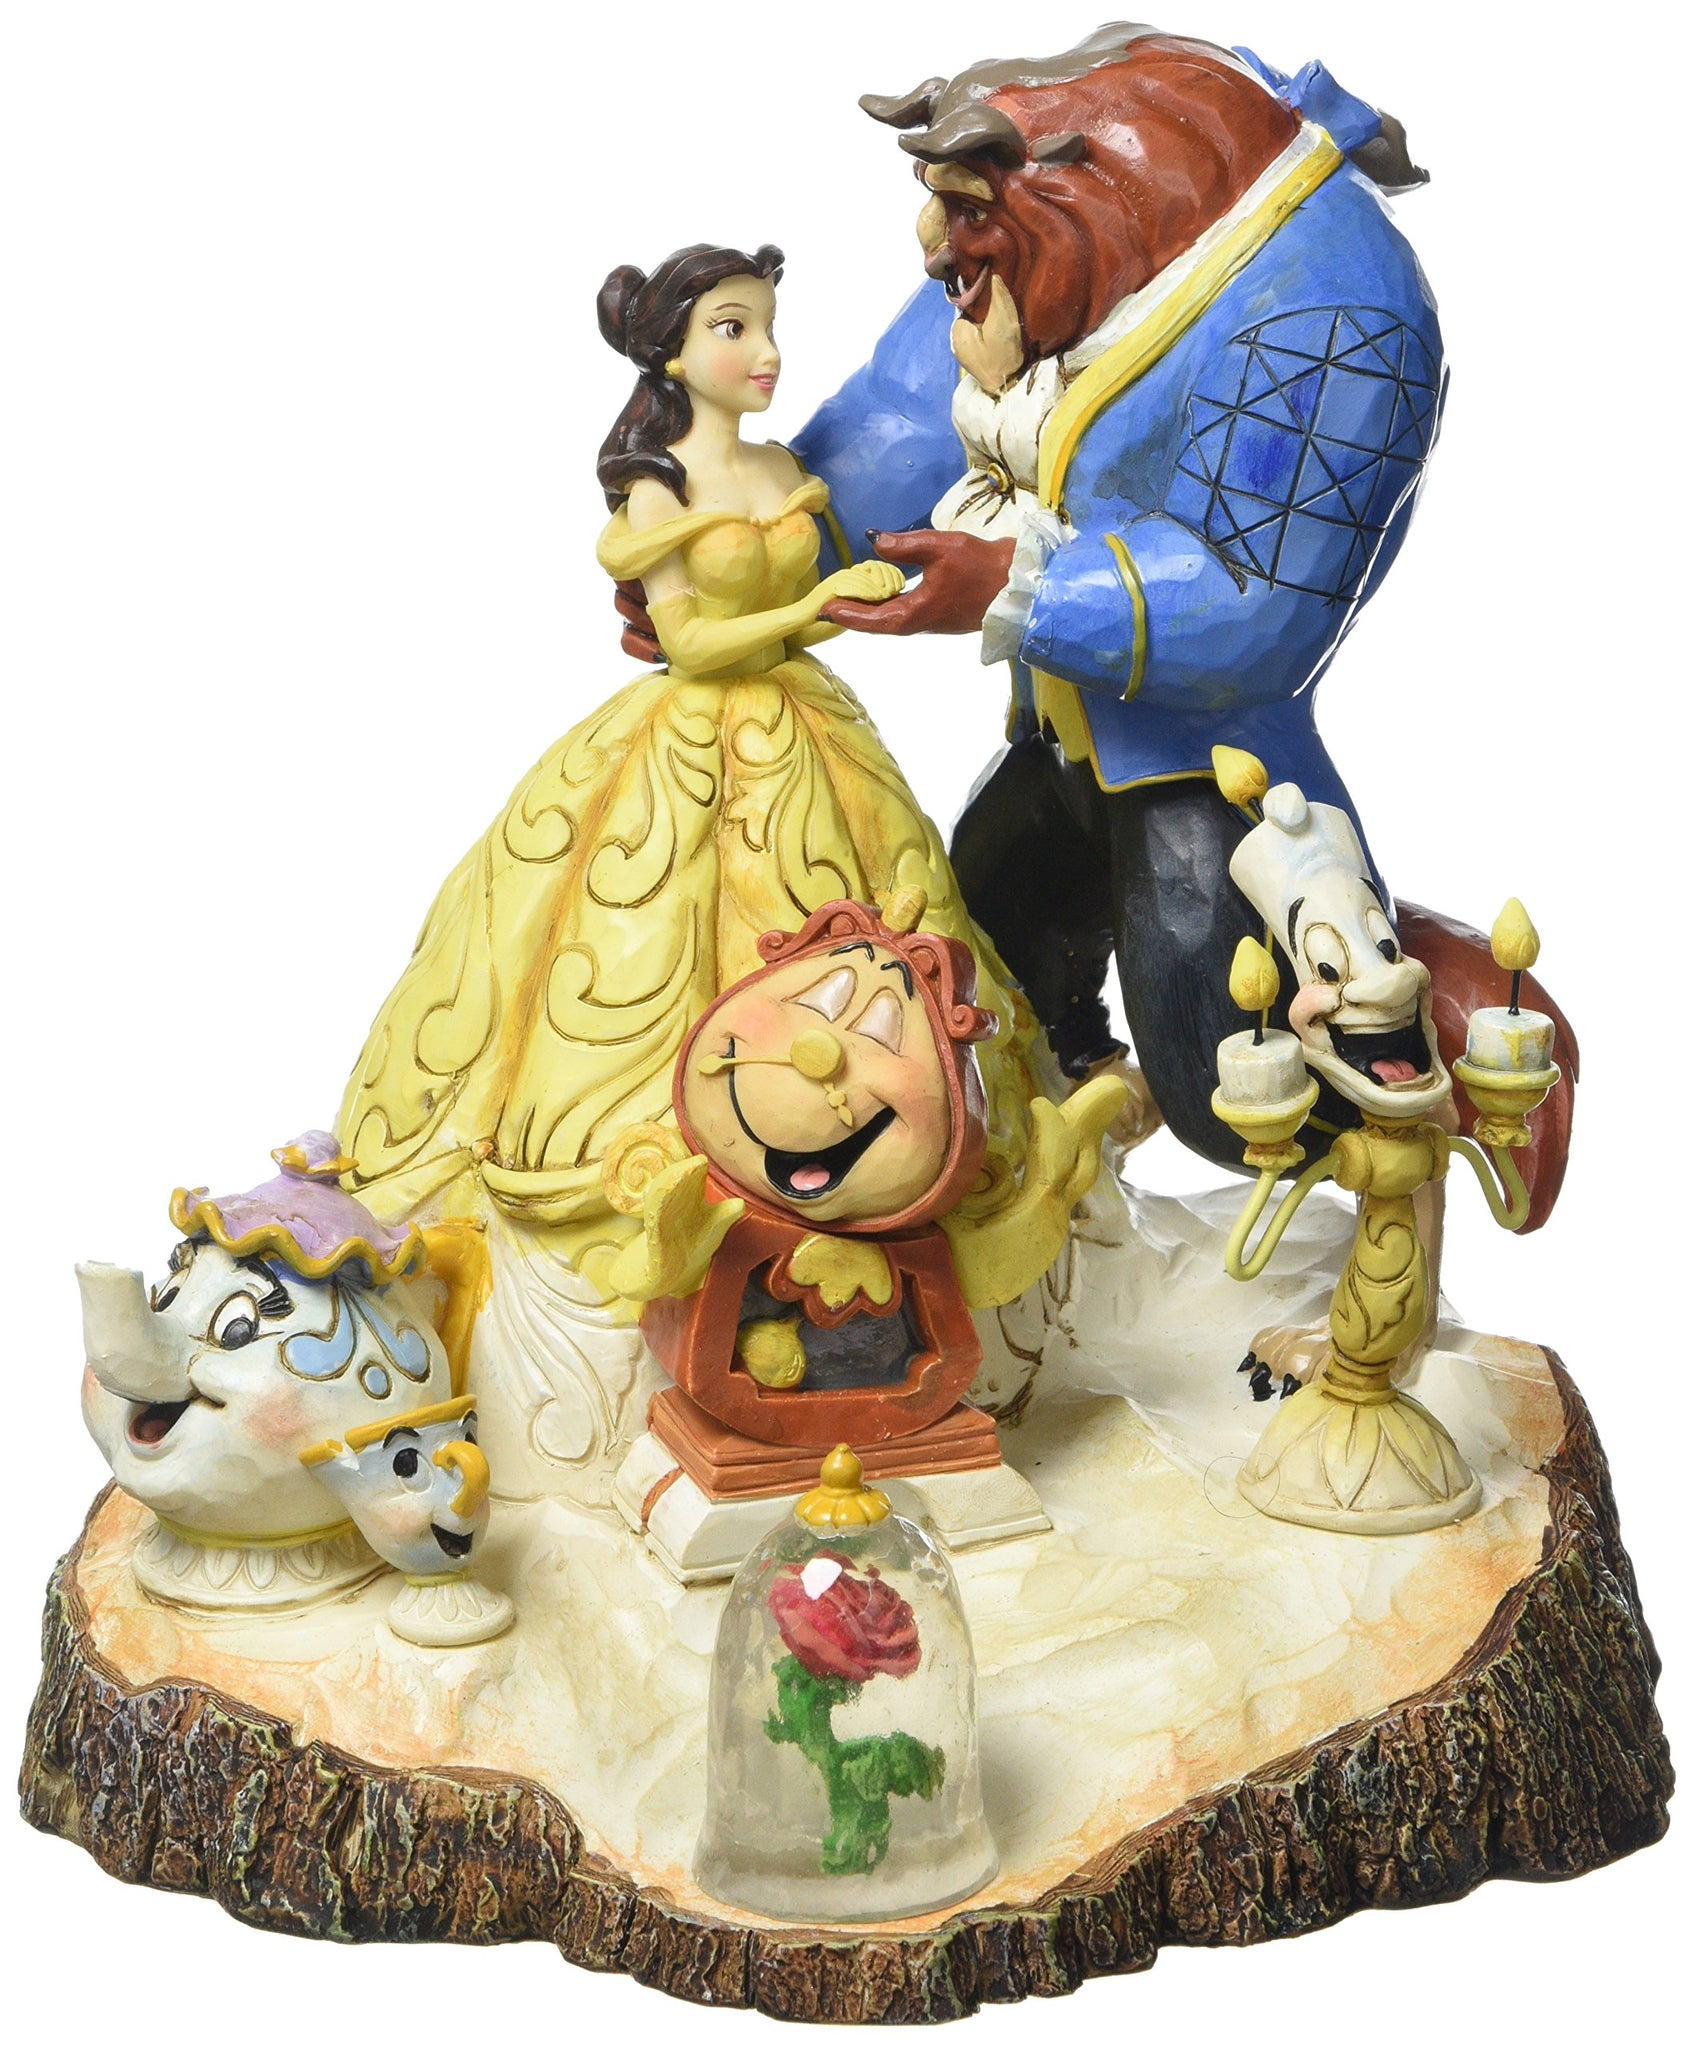 Disney Traditions by Jim Shore Beauty and the Beast Figurine